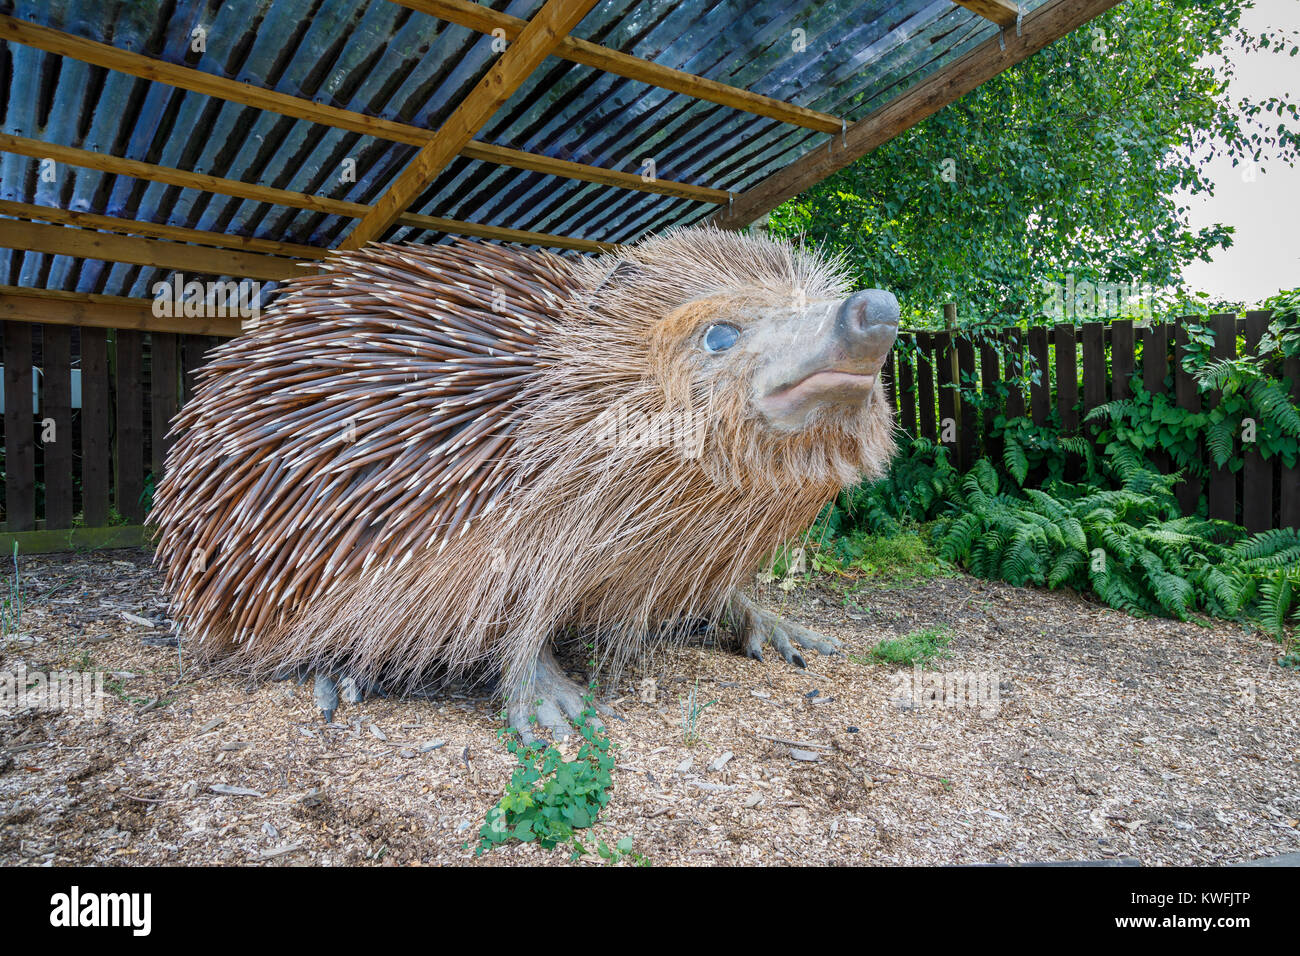 Giant model hedgehog at the entrance to the British Wildlife Centre, a zoo and wildlife sanctuary for native species, - Stock Image